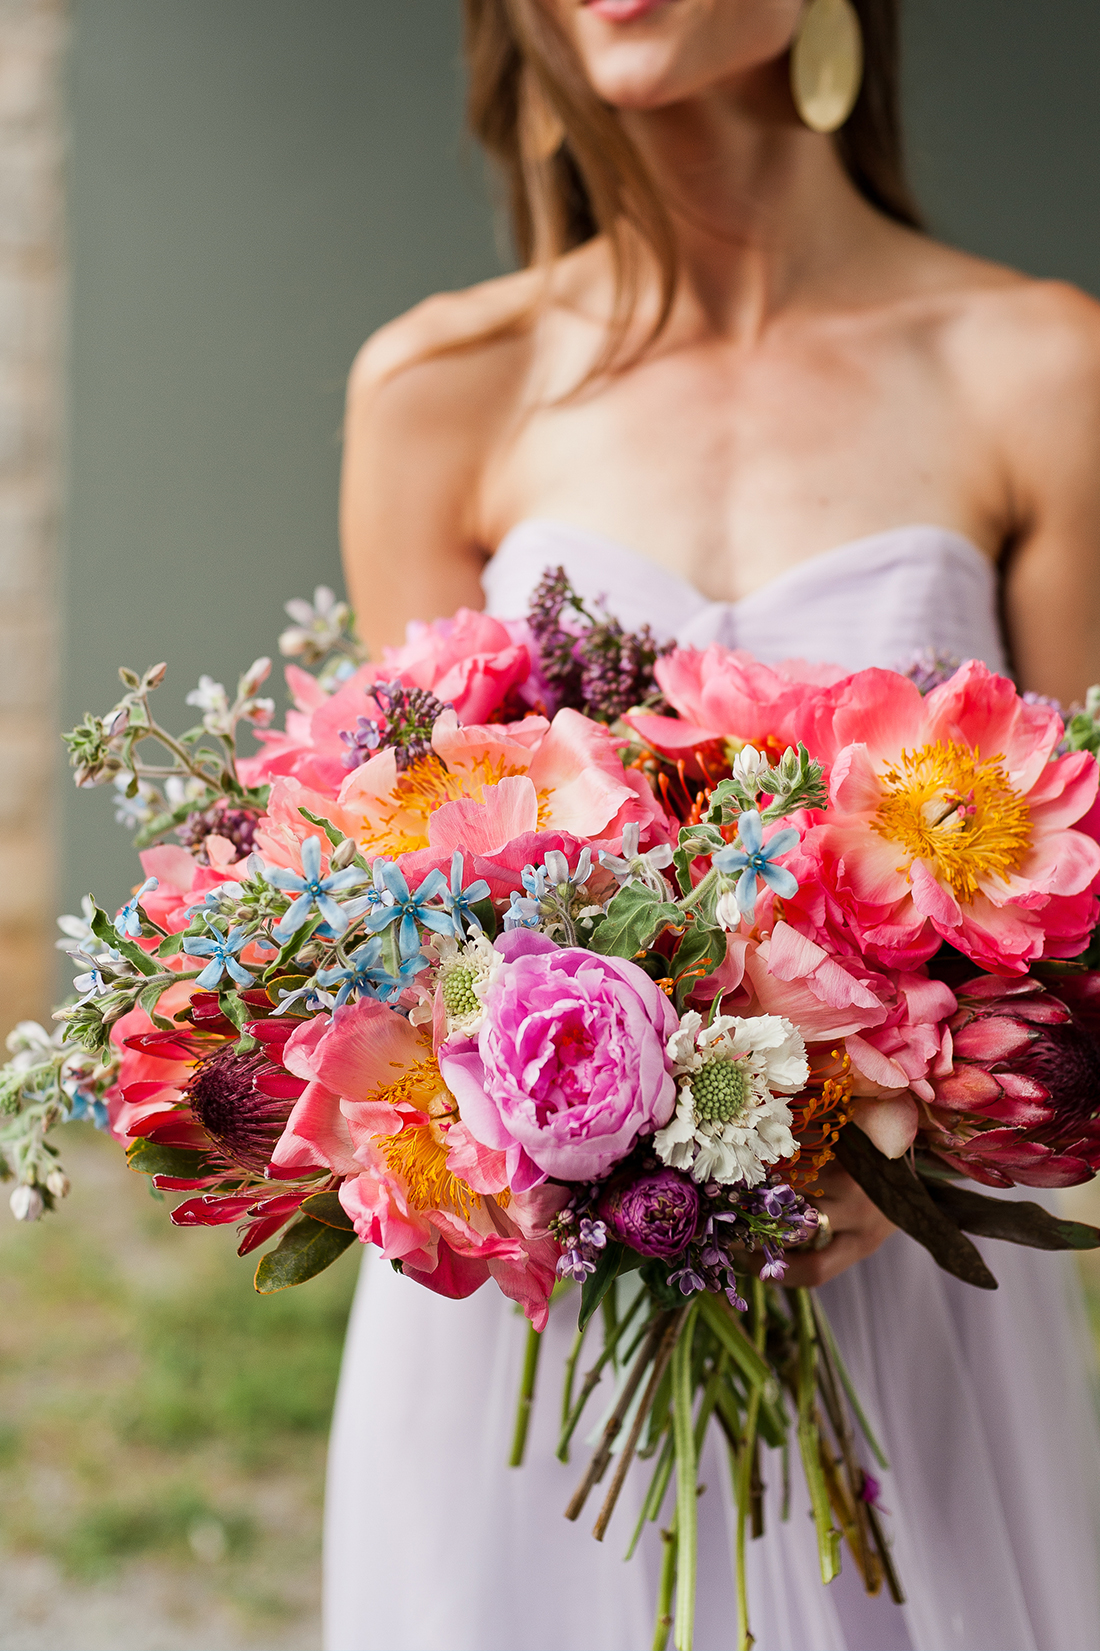 Wedding check out this stunning wedding bouquet you can diy hey bc brittni mehlhoff here the founding editorart directorstylist of paper stitch to bring one of my favorite wedding diys to the brit co mix solutioingenieria